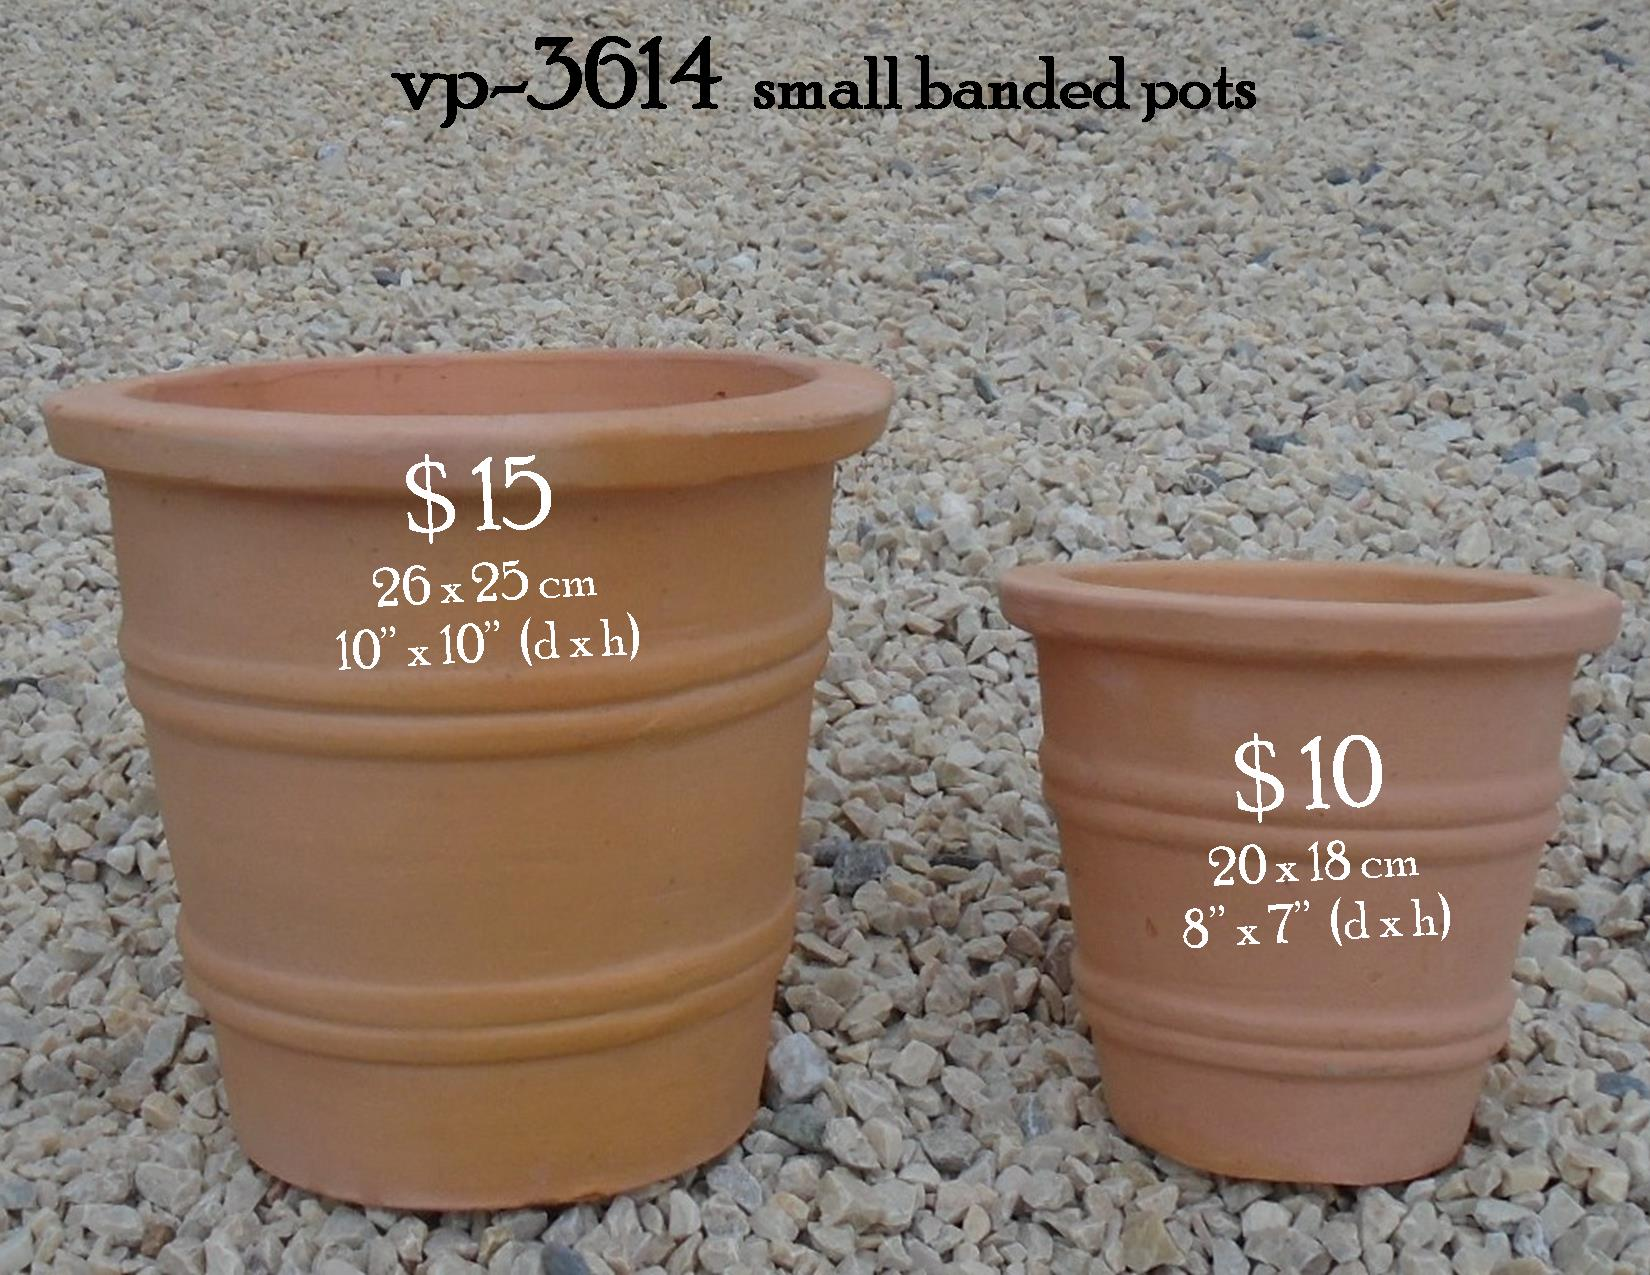 vp-3614  small banded pots